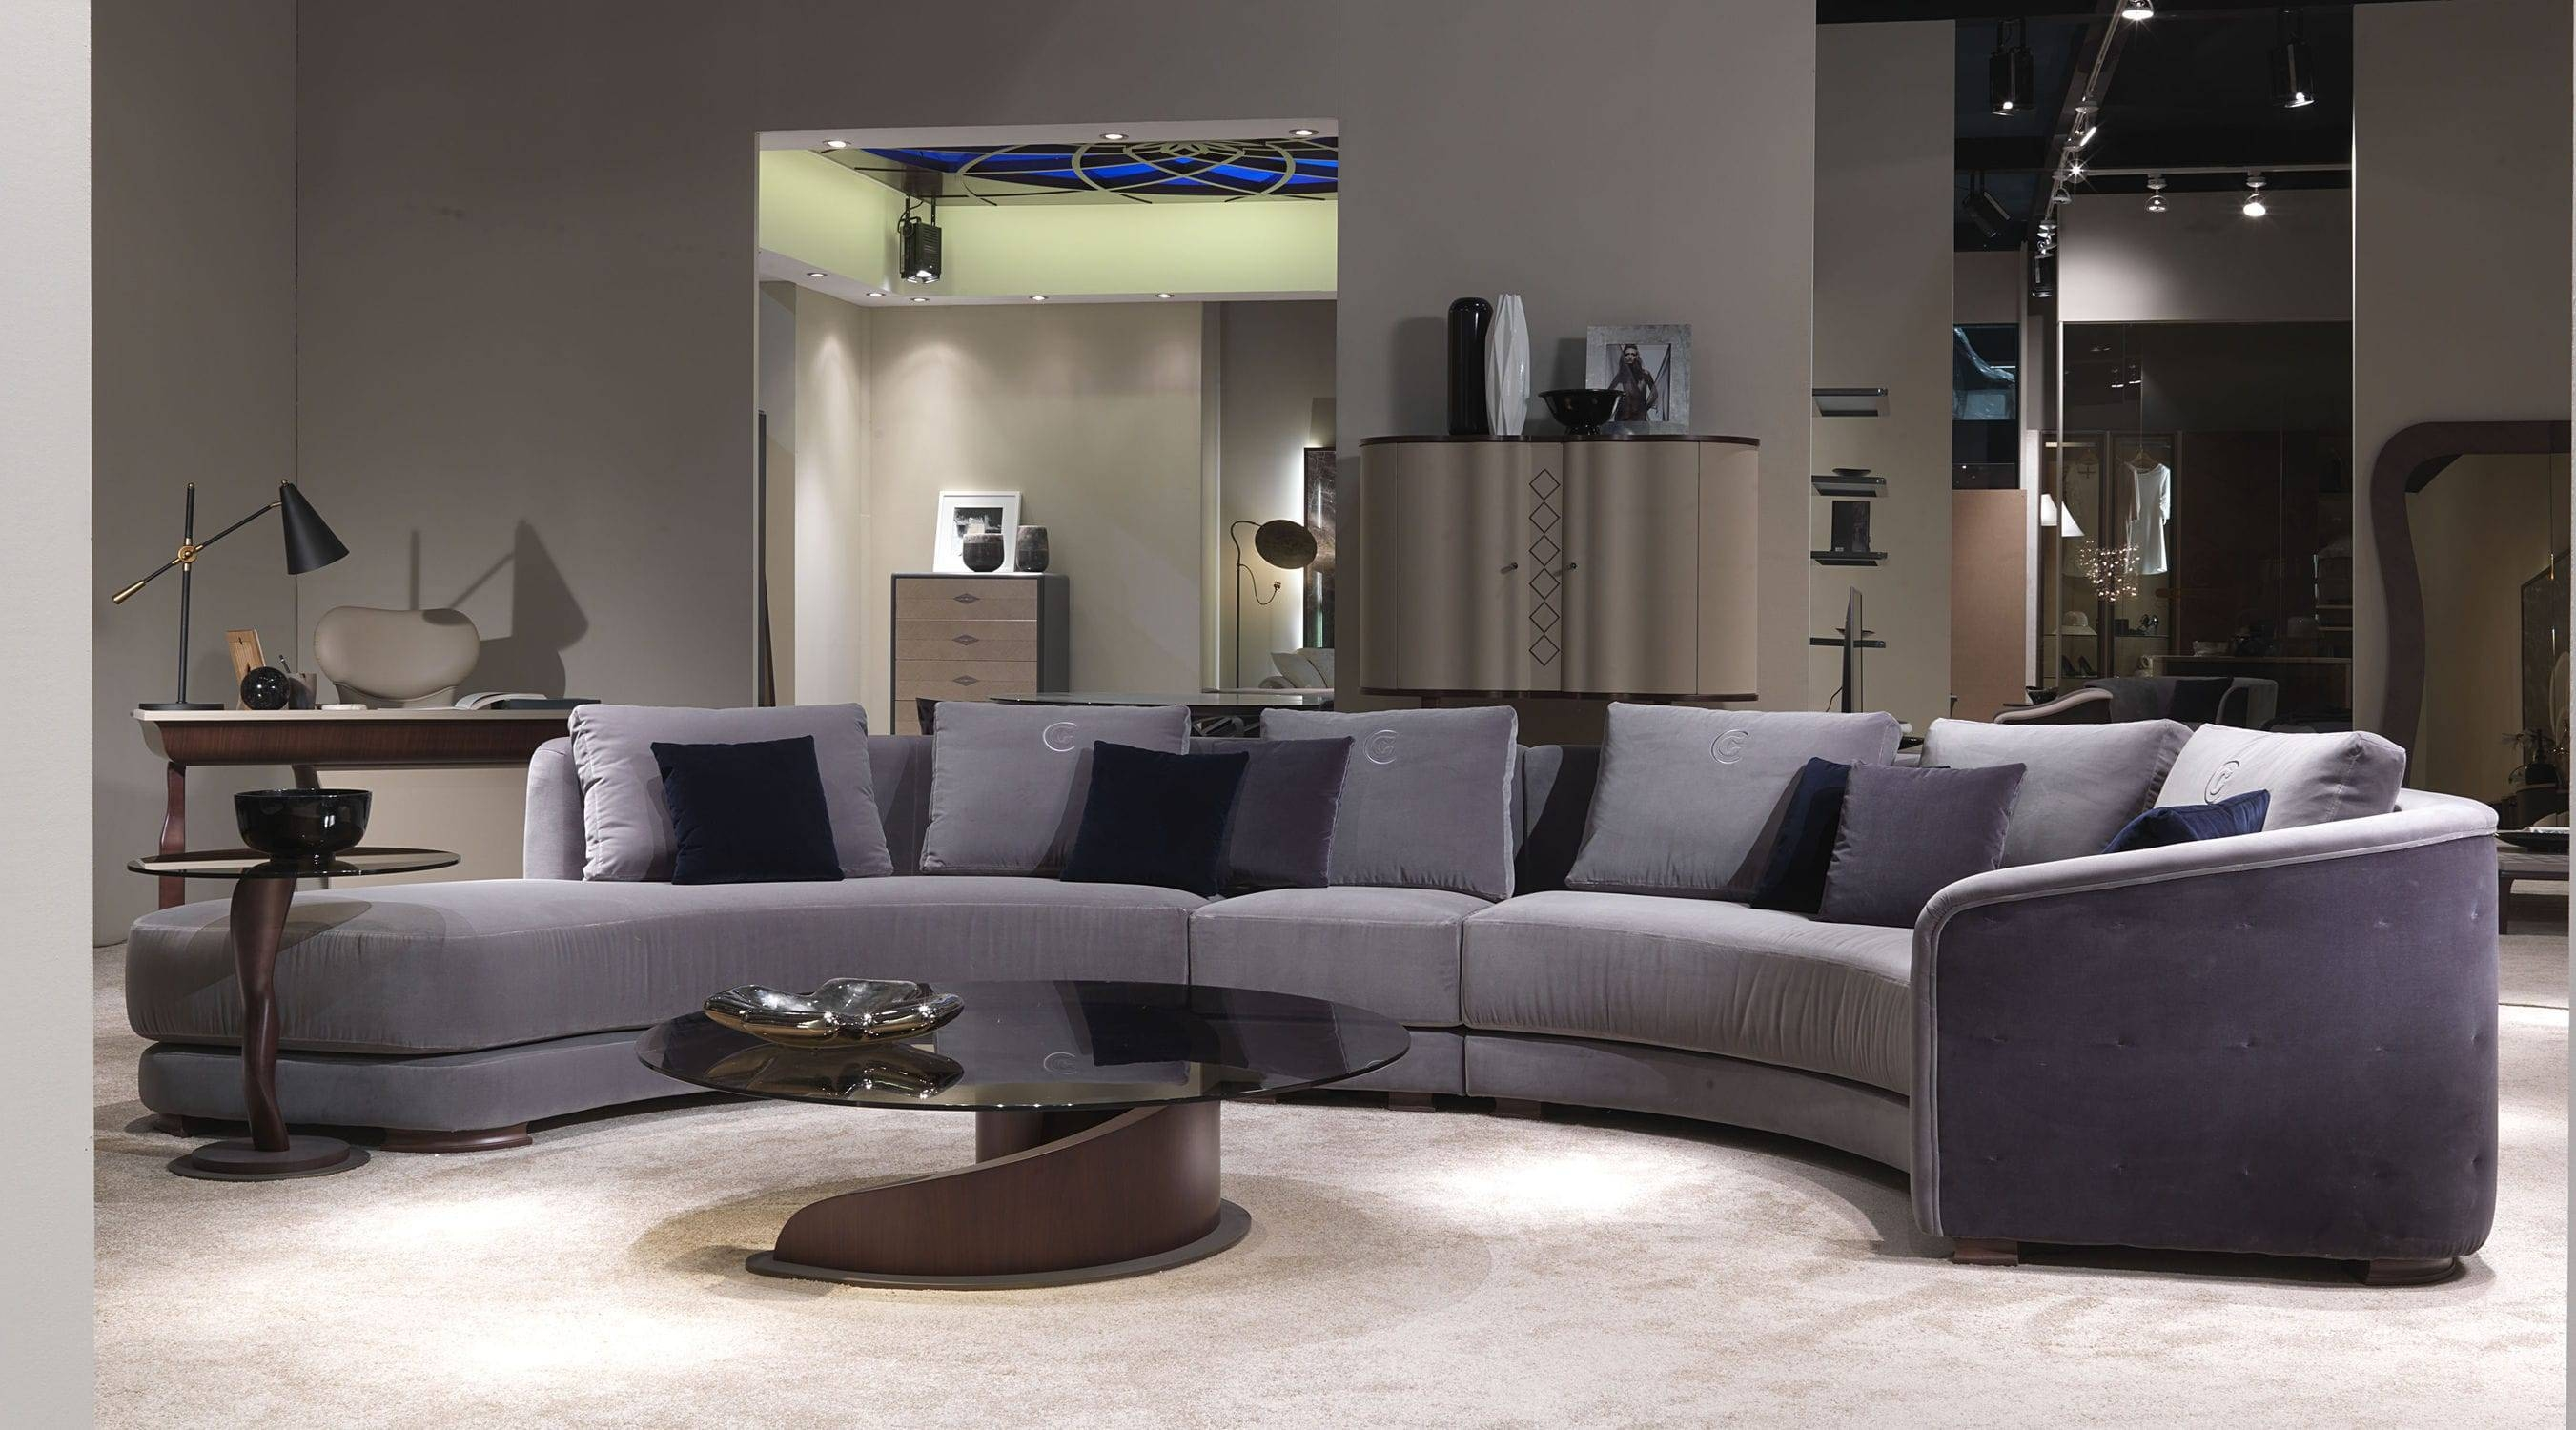 Semicircular Sofa / Contemporary / Fabric / 6-Seater - Di43 Desyo pertaining to Semicircular Sofa (Image 17 of 30)